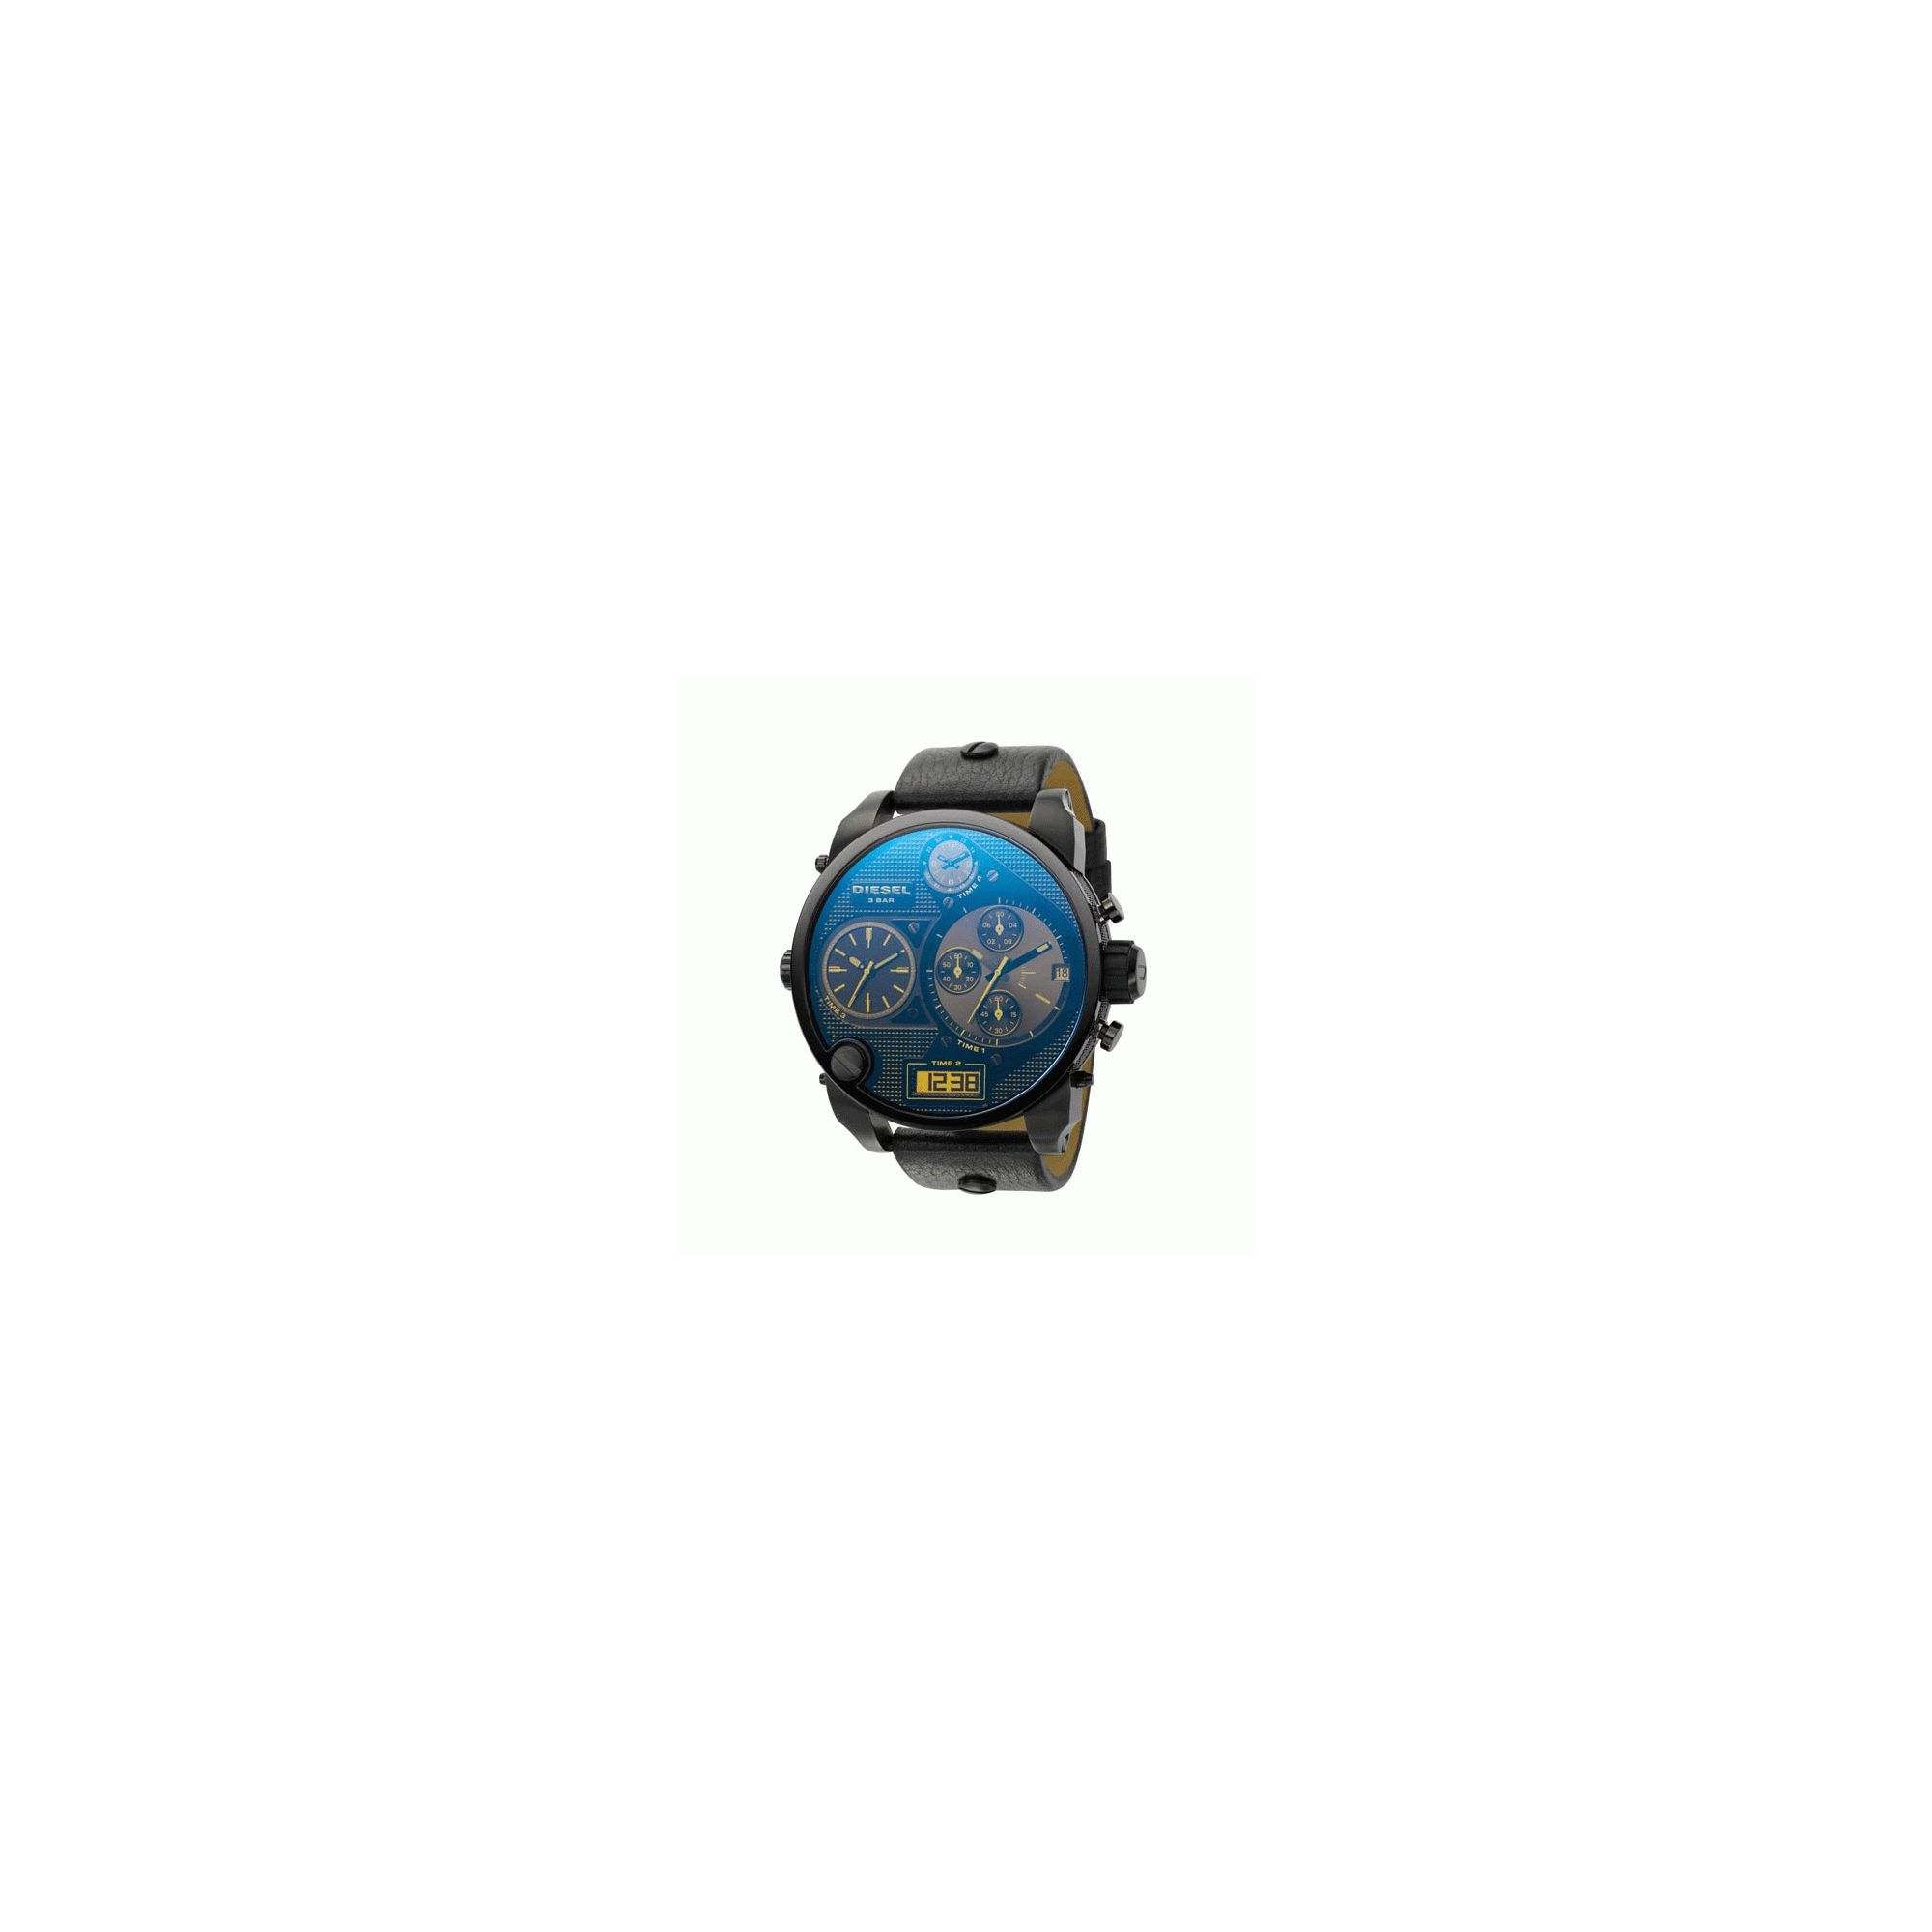 Diesel Bad a** Chronograph Watch DZ7127 at Tesco Direct